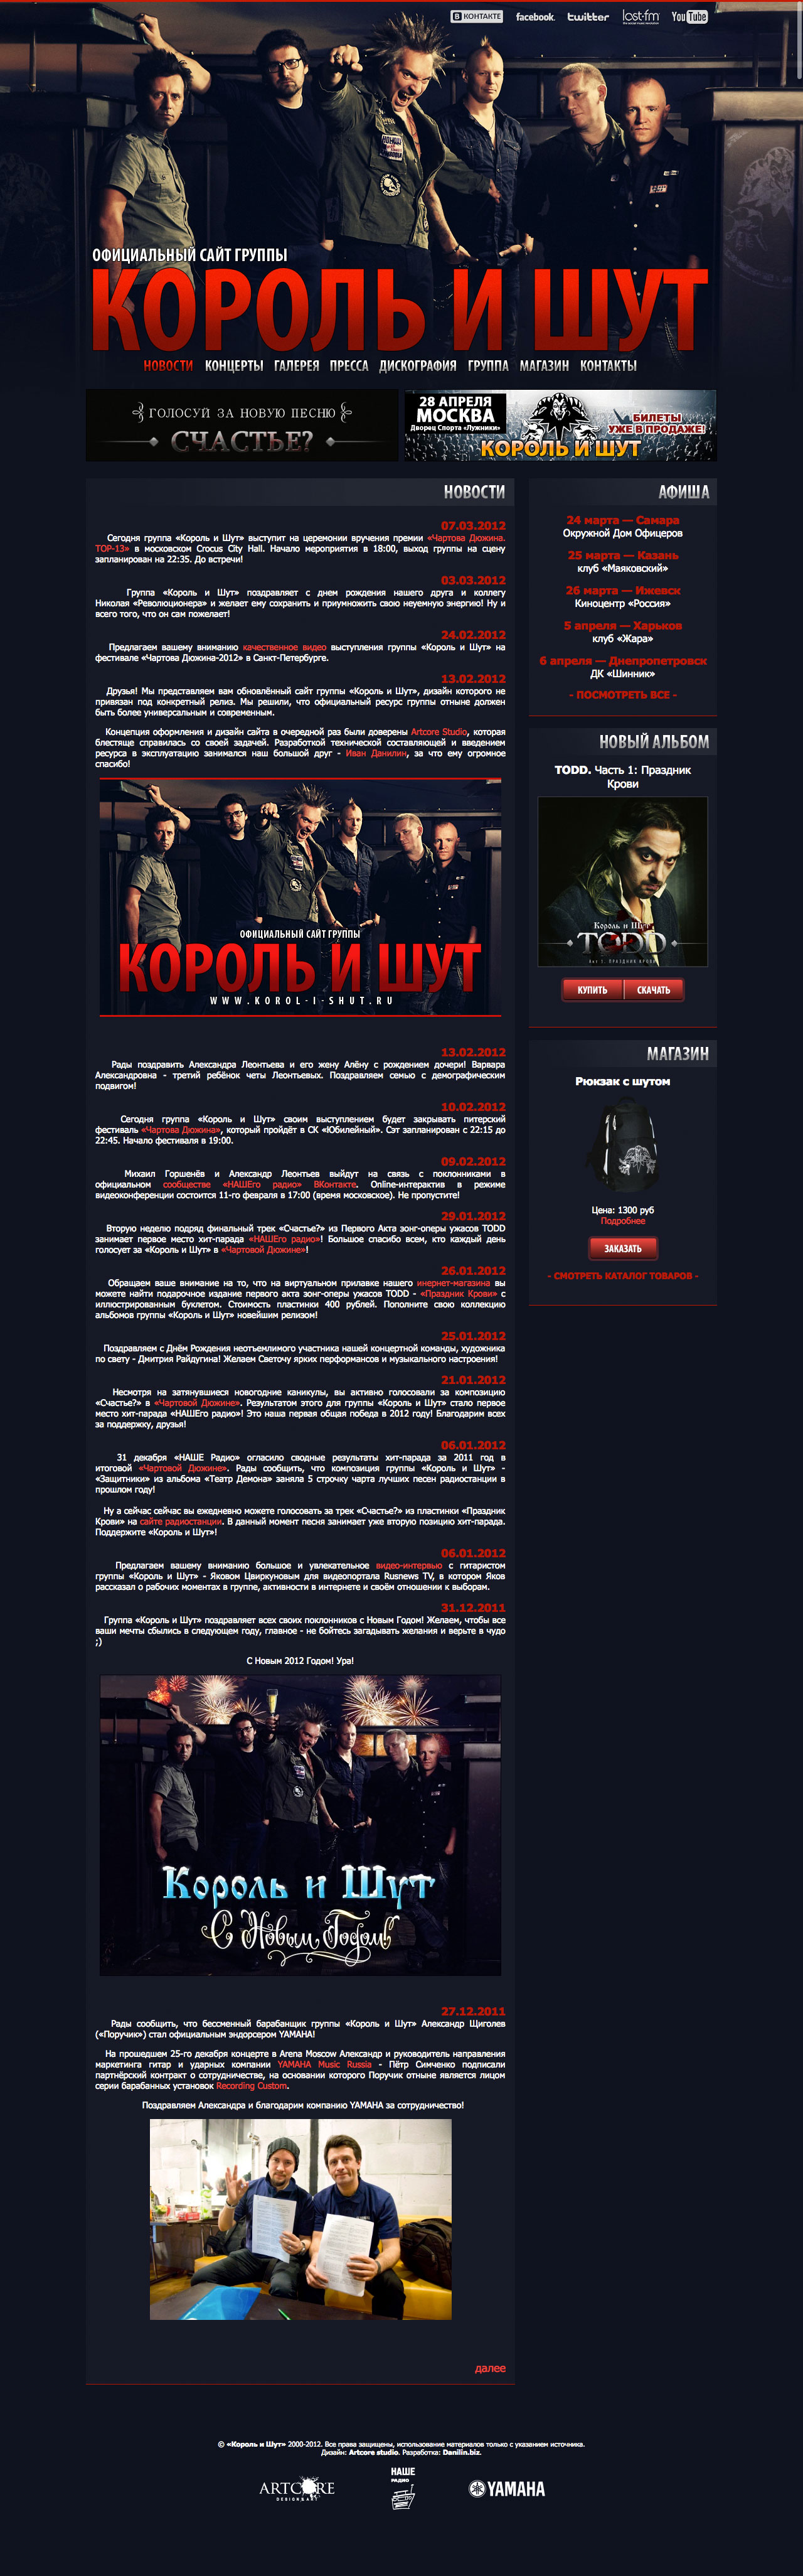 https://danilin.biz/wp-content/uploads/2012/09/korol-i-shut-official-site-2012.jpg